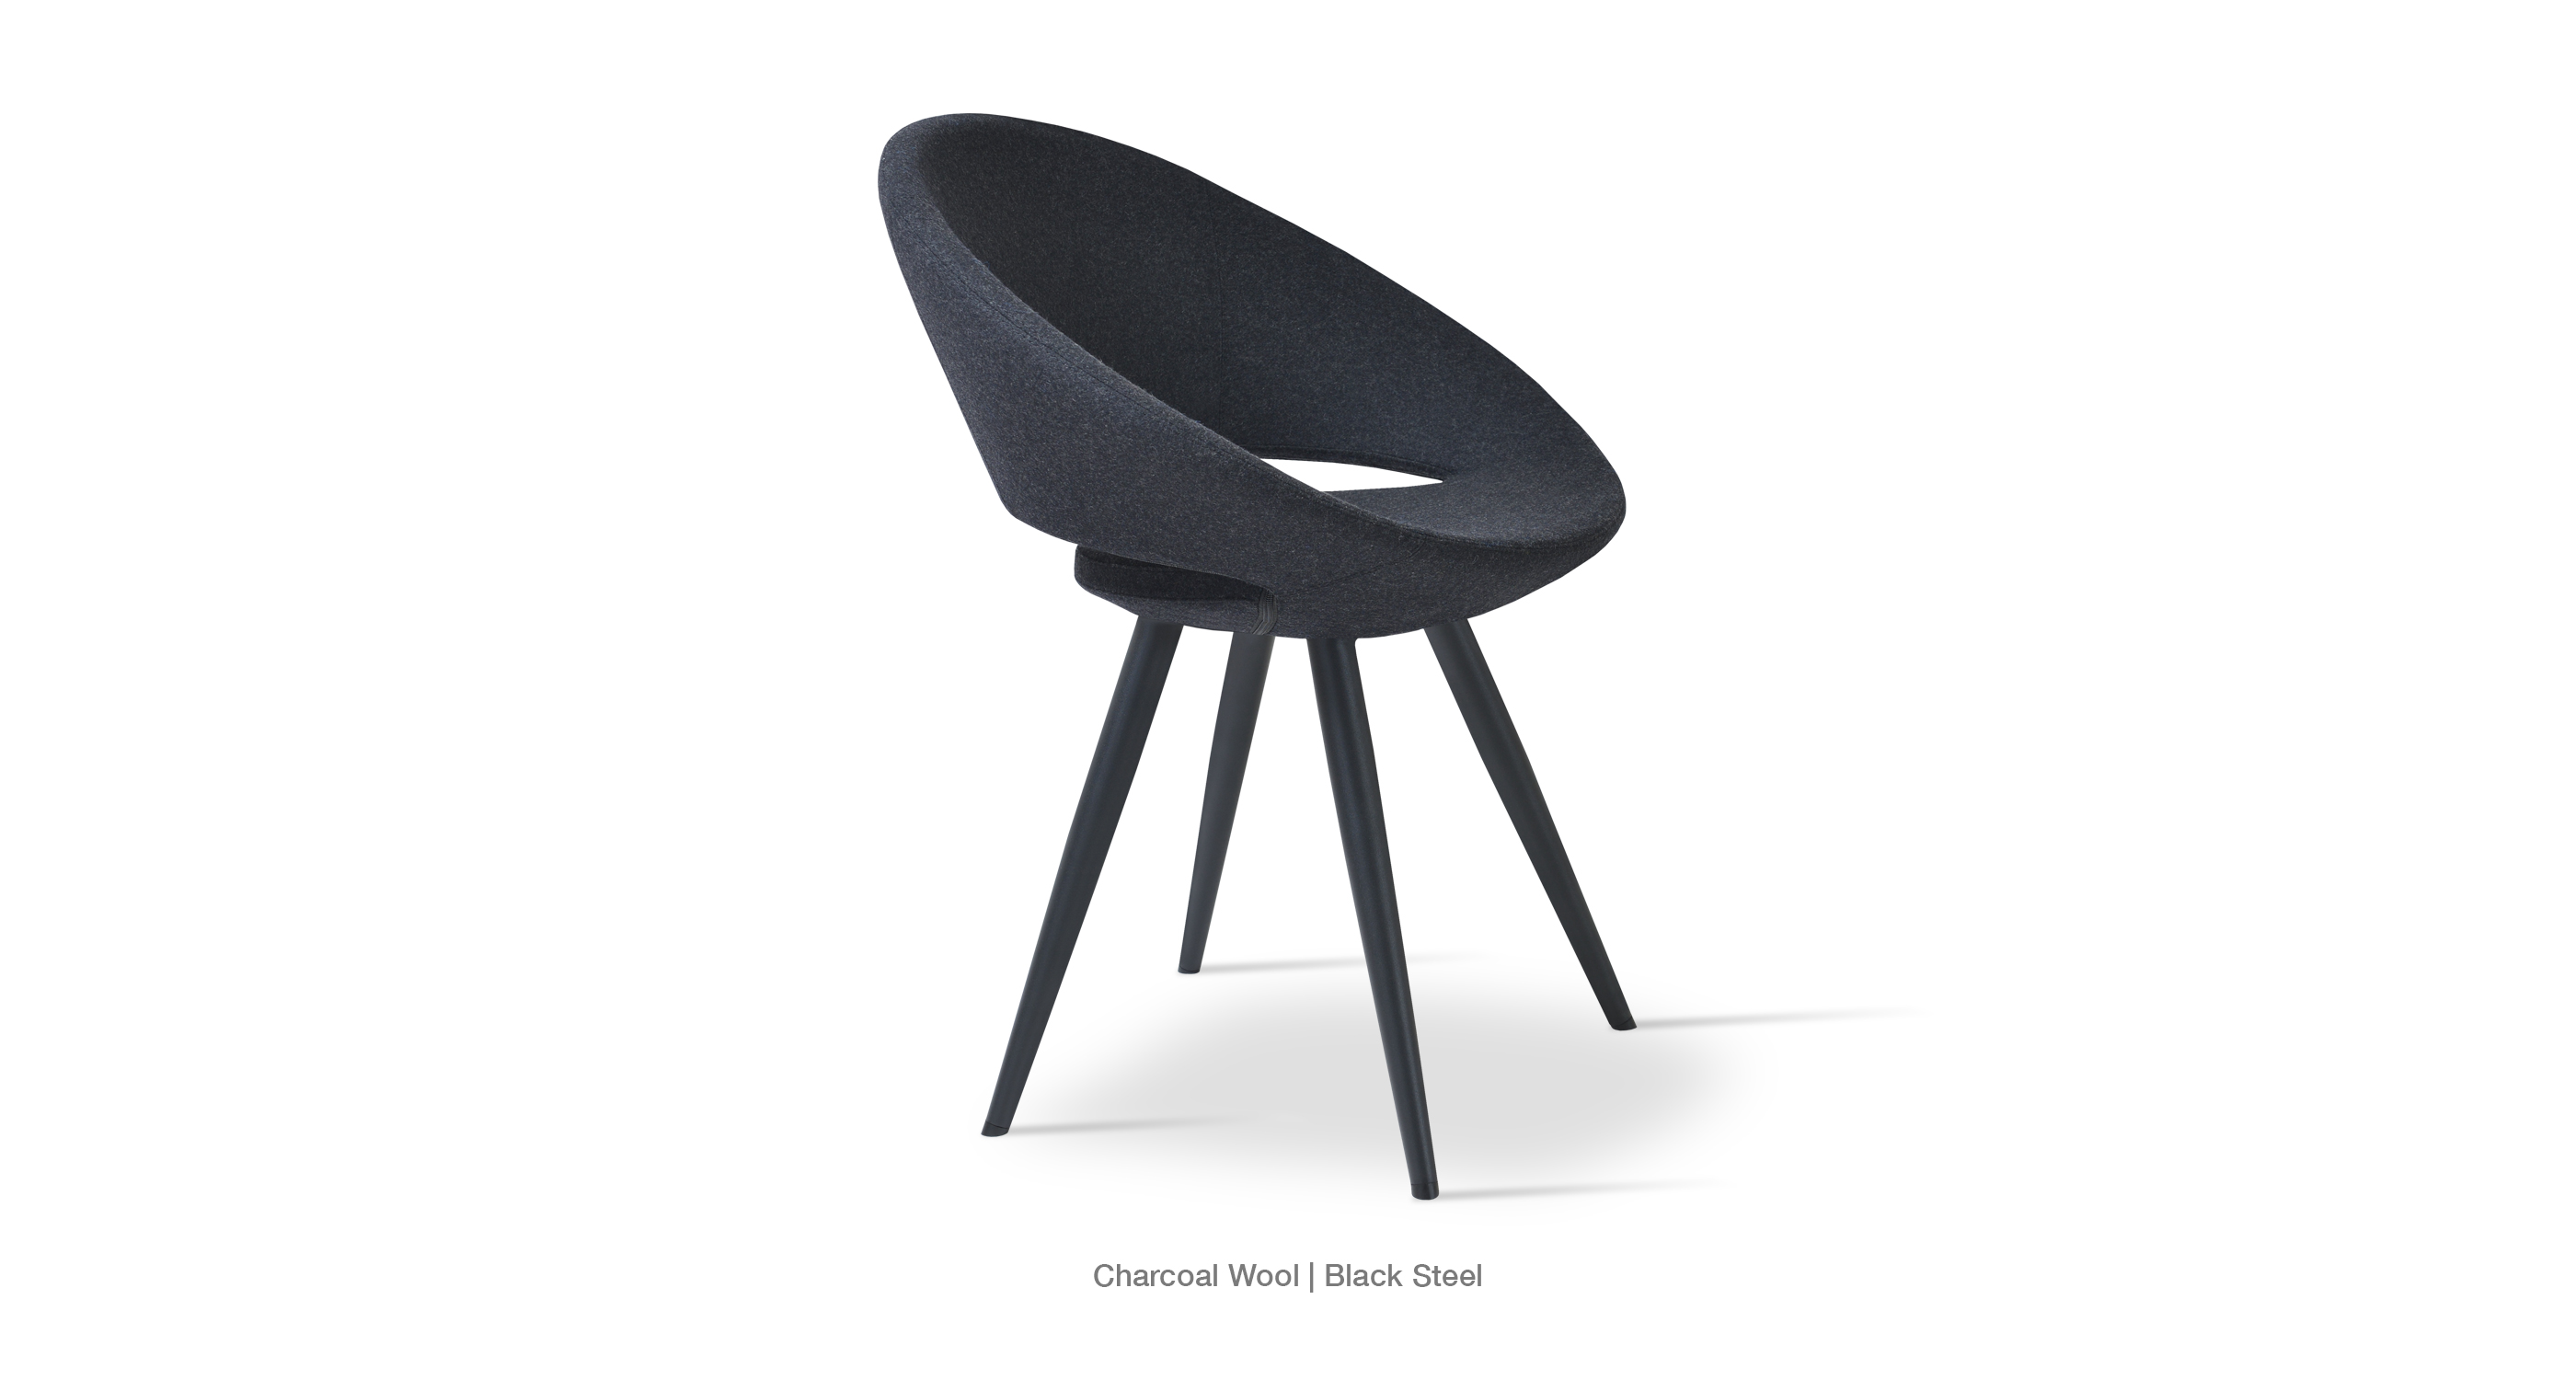 Crescent Star Charcoal Wool Black base